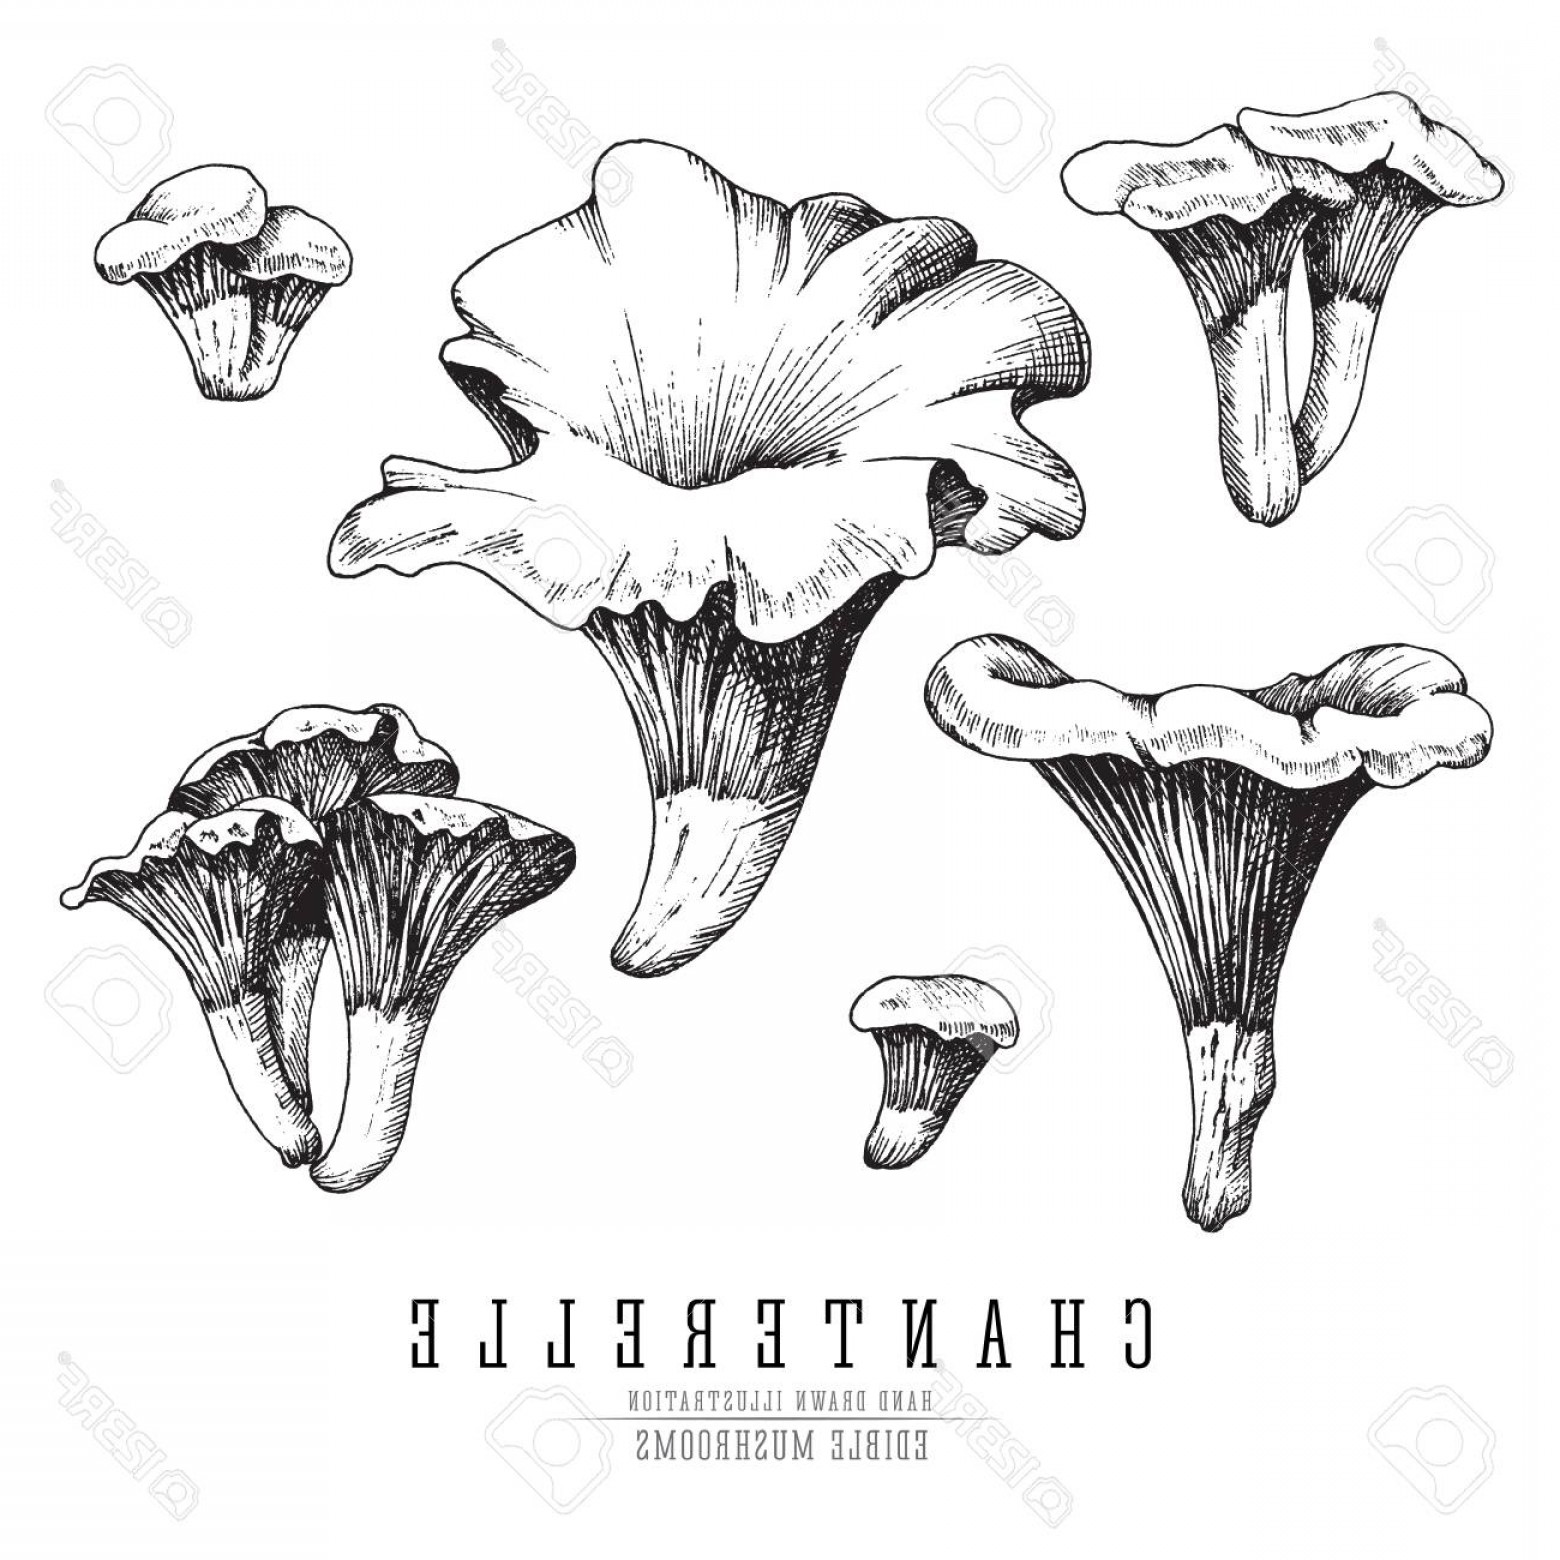 Chanterelle Mushrooms Vector: Photostock Vector Chanterelle Mushrooms Vector Sketch Collection Edible Mushroom Isolated Single And Groups Engraving